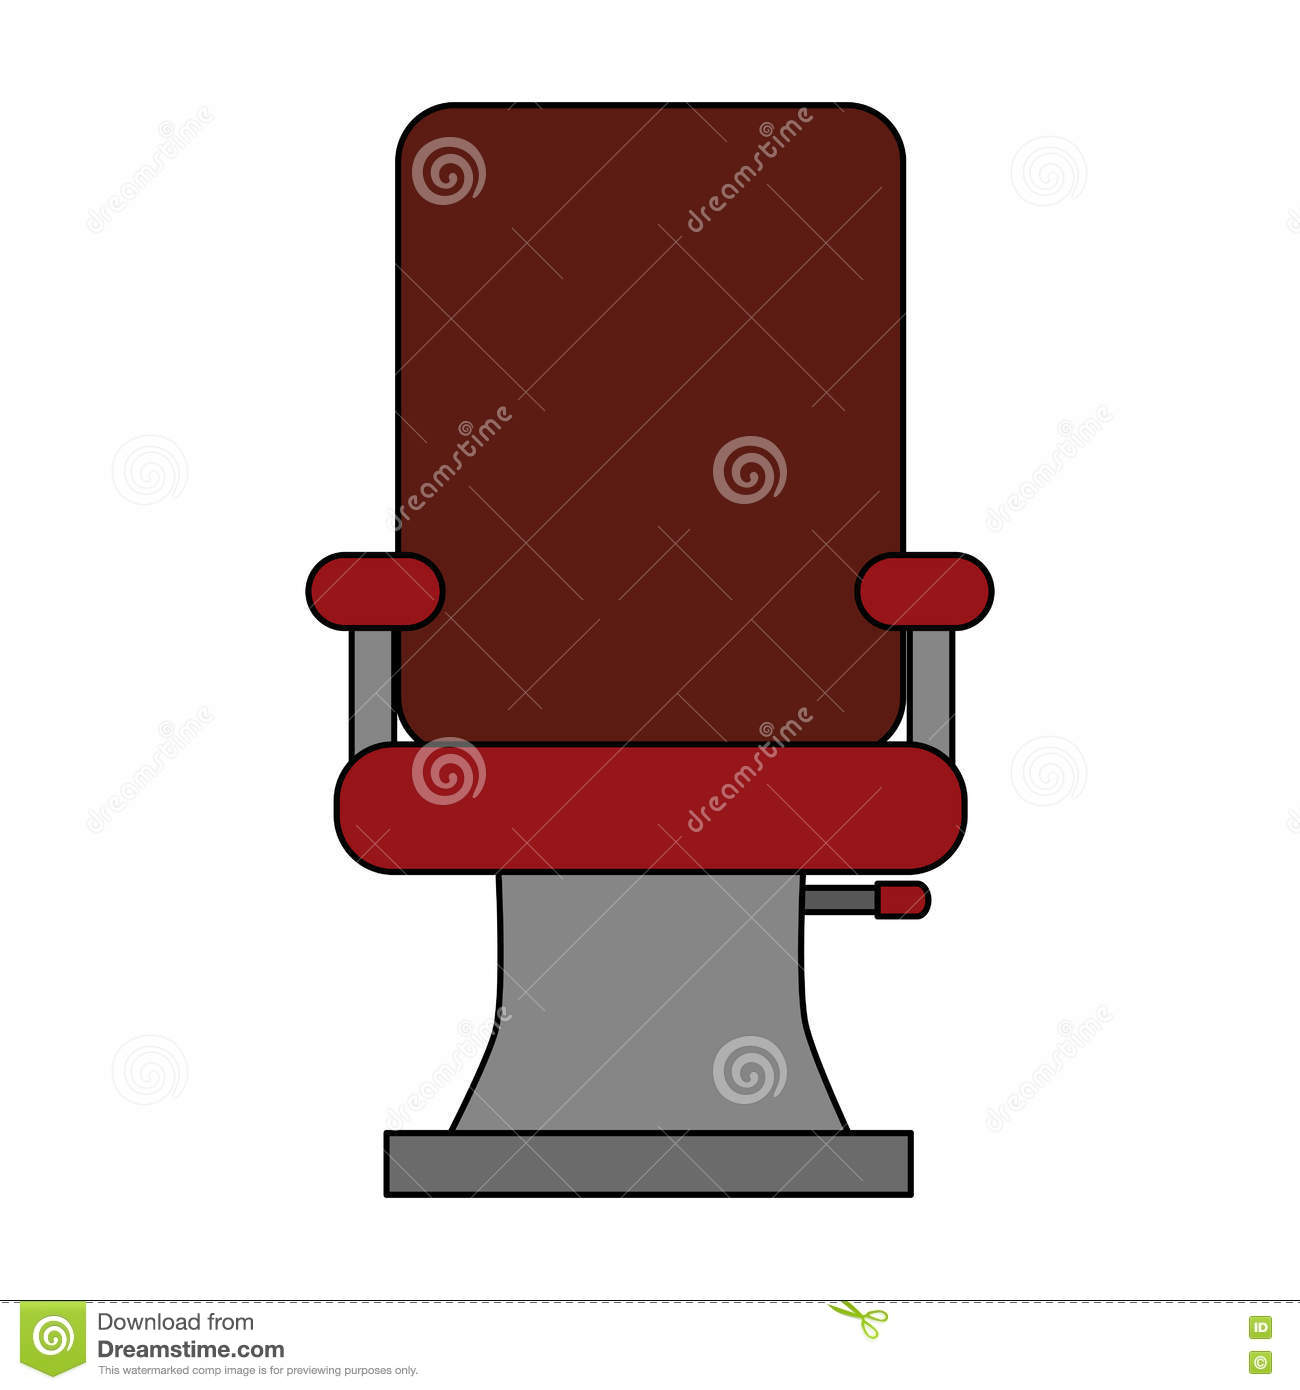 Barbershop chair design illustration